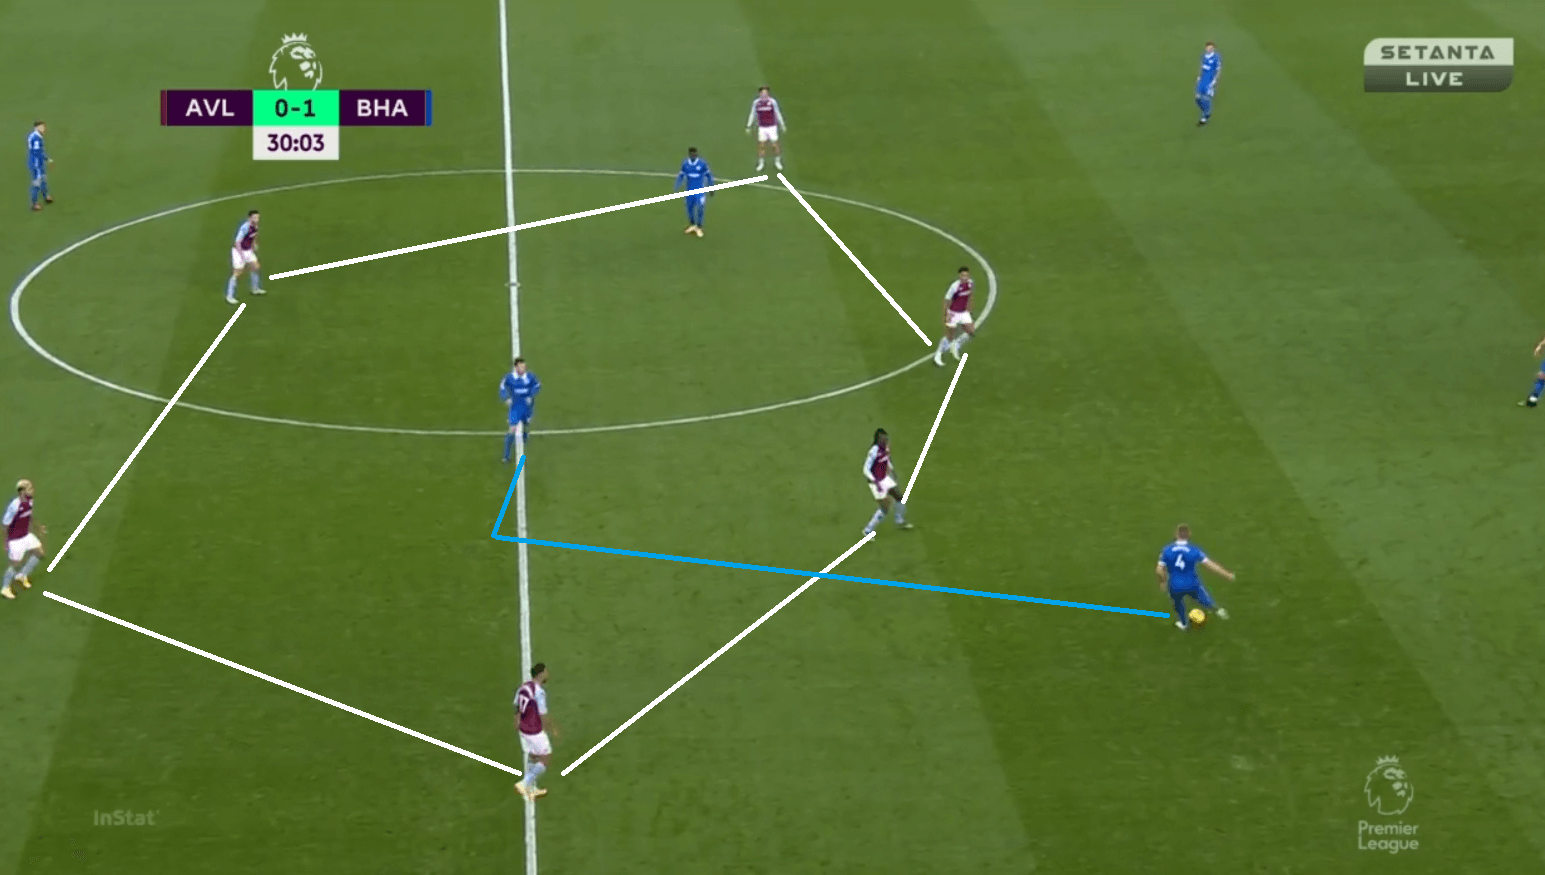 Premier League 2020/21: Aston Villa vs Brighton - tactical analysis - tactics